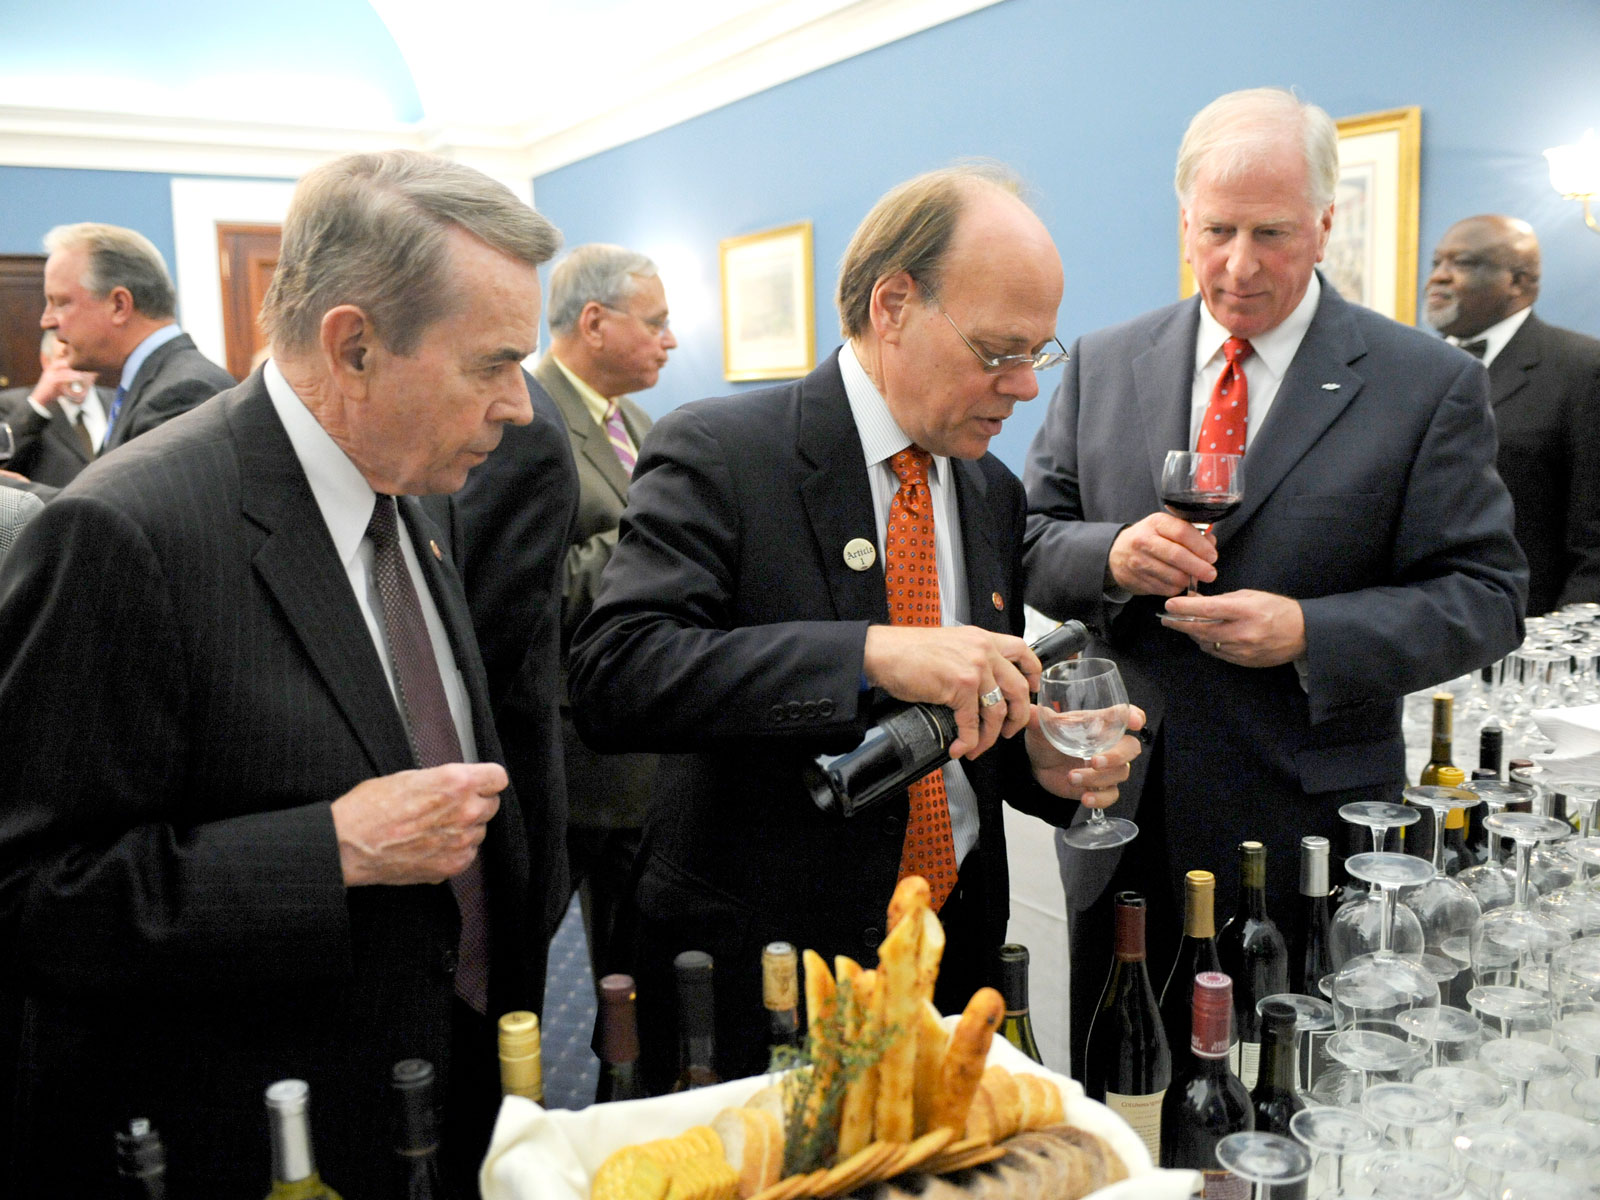 Rare Moments of Bipartisanship with the Congressional Wine Caucus